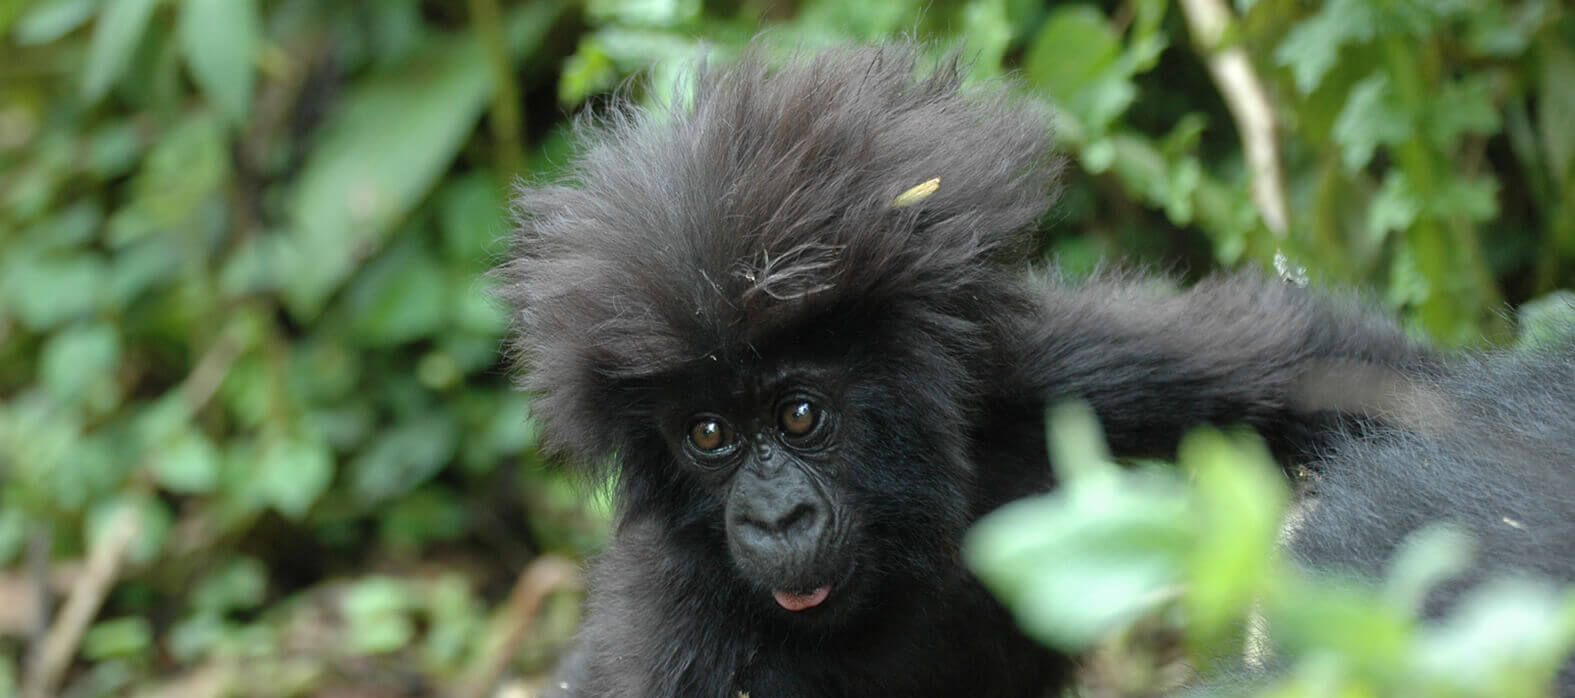 Aga Safaris is the best African wildlife Safari and gorilla trekking specialist in planning Luxury tours, adventure travels and gorilla tracking trips of a lifetime for over years! Our Expert Travel Consultants offer exceptional levels of friendly service